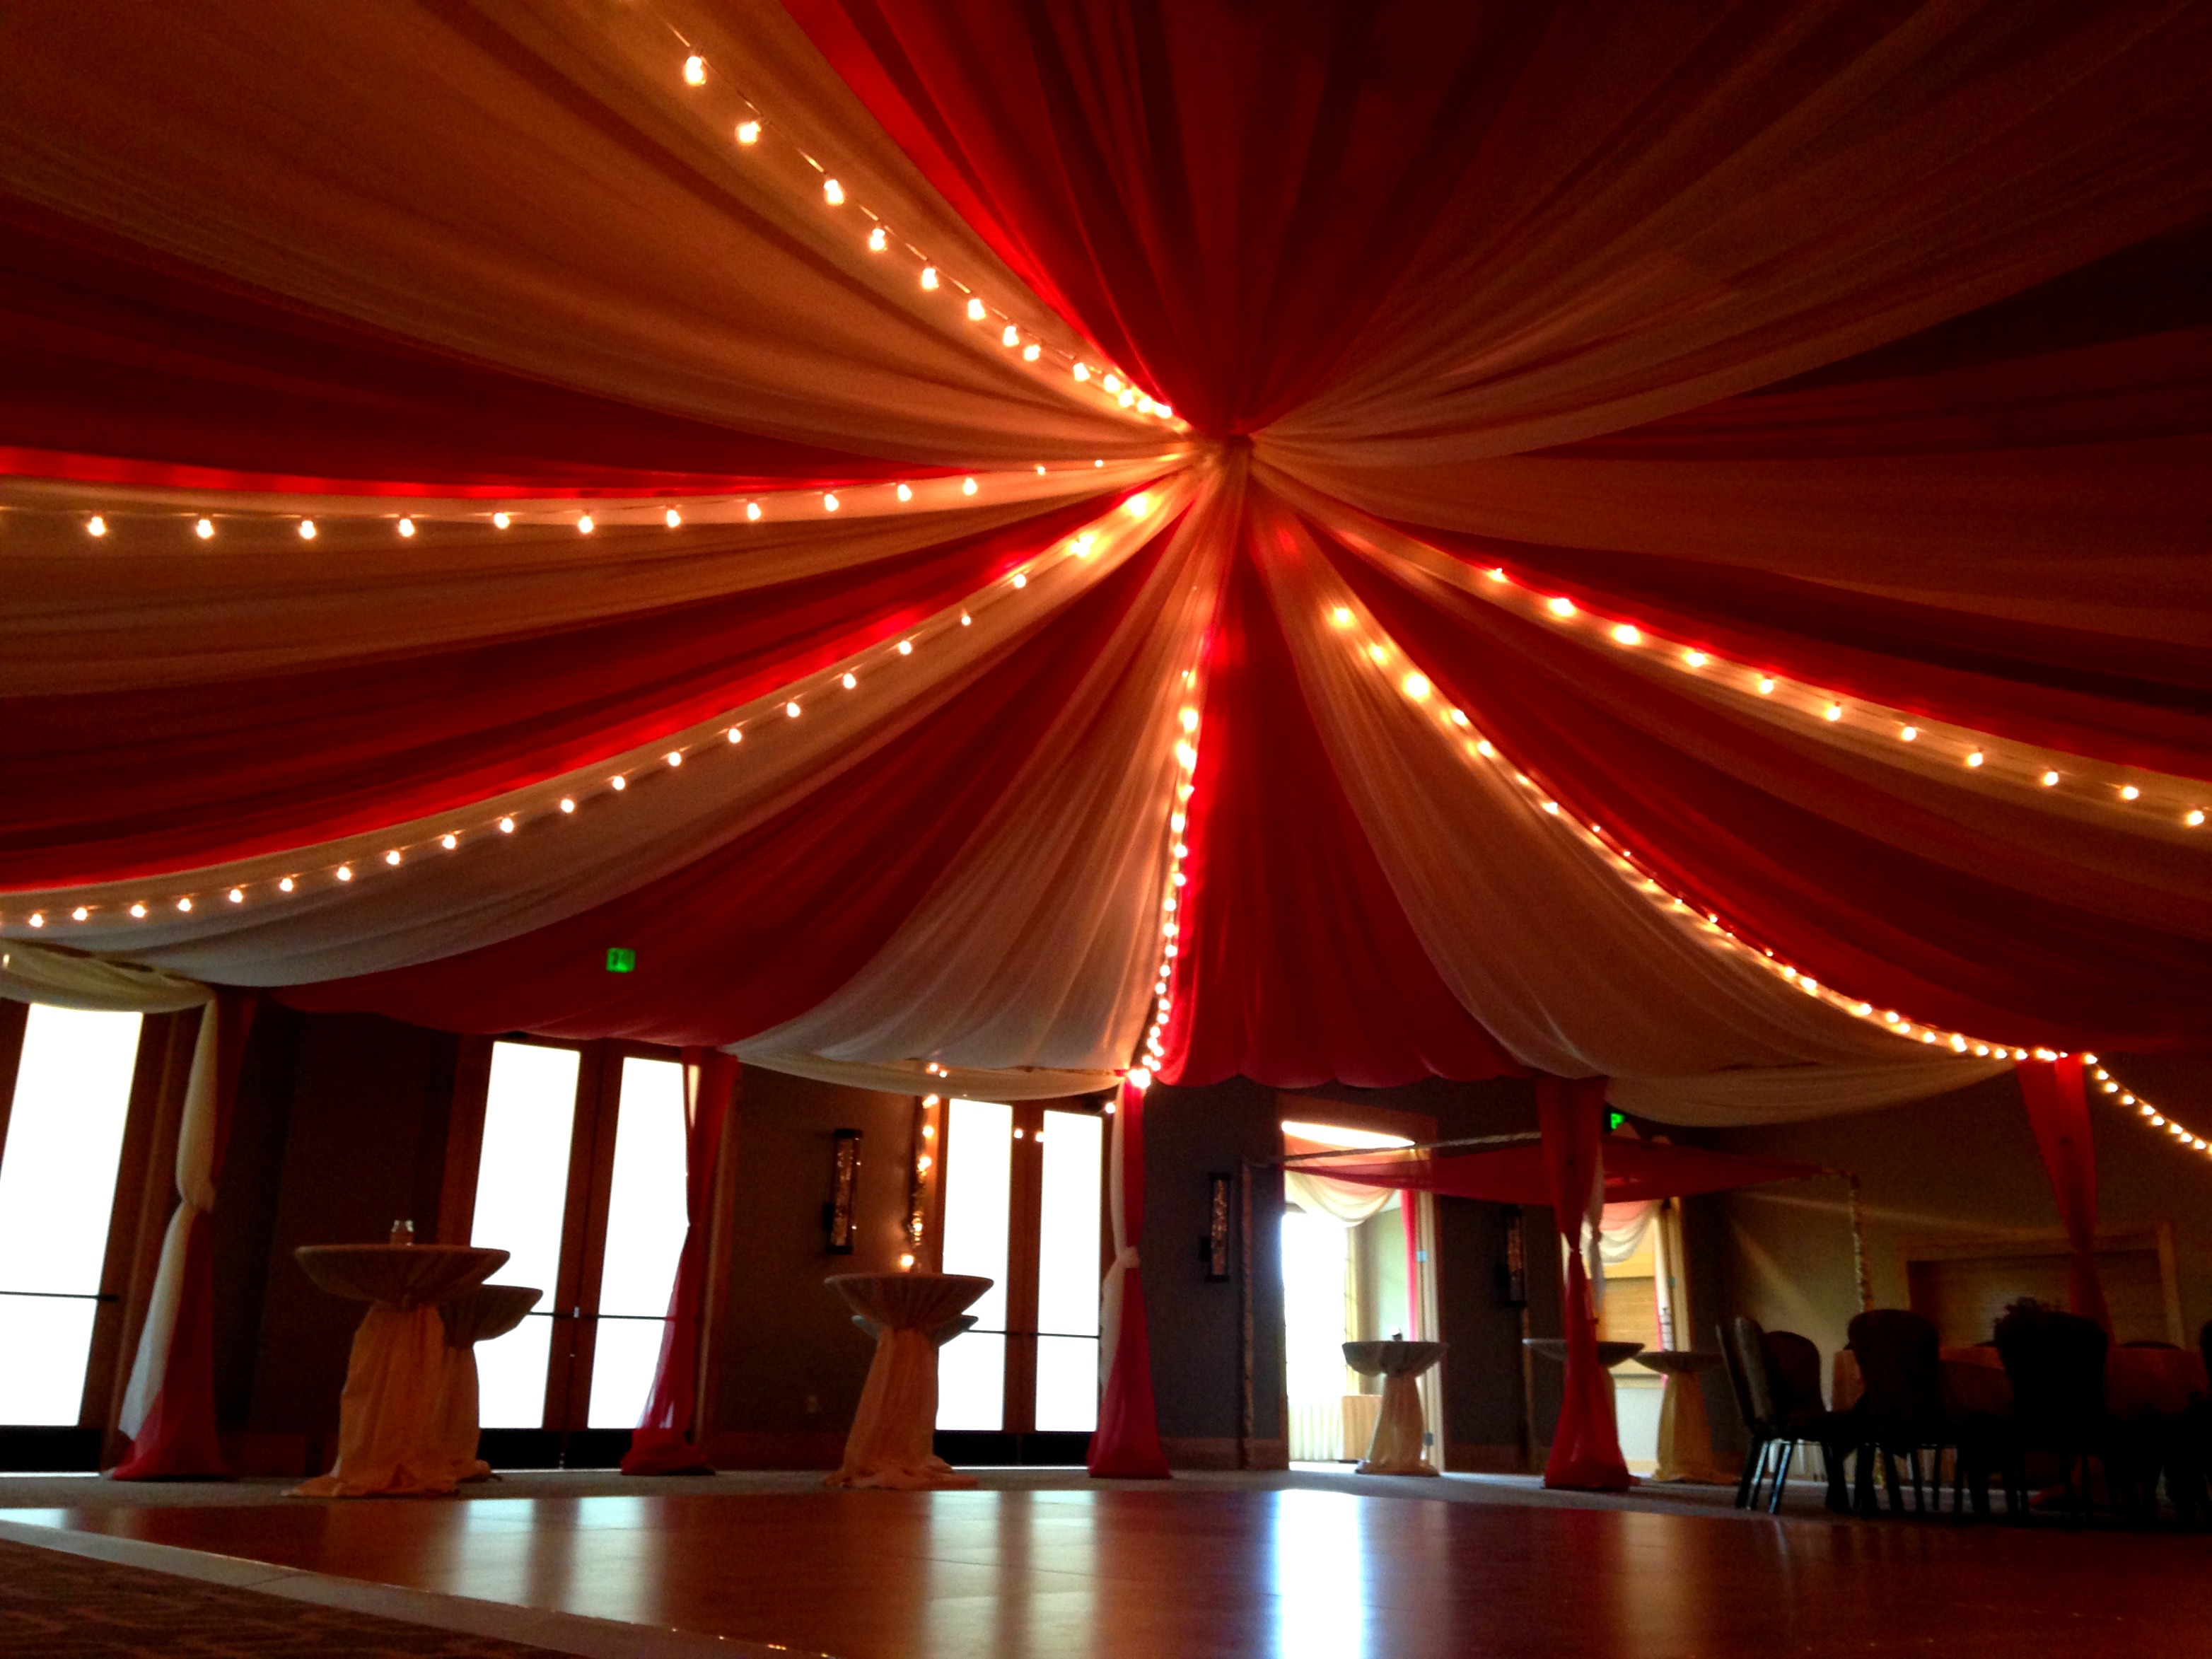 The ballroom at Hazeltine National Golf Club decorated with a circus theme for a fundraising gala